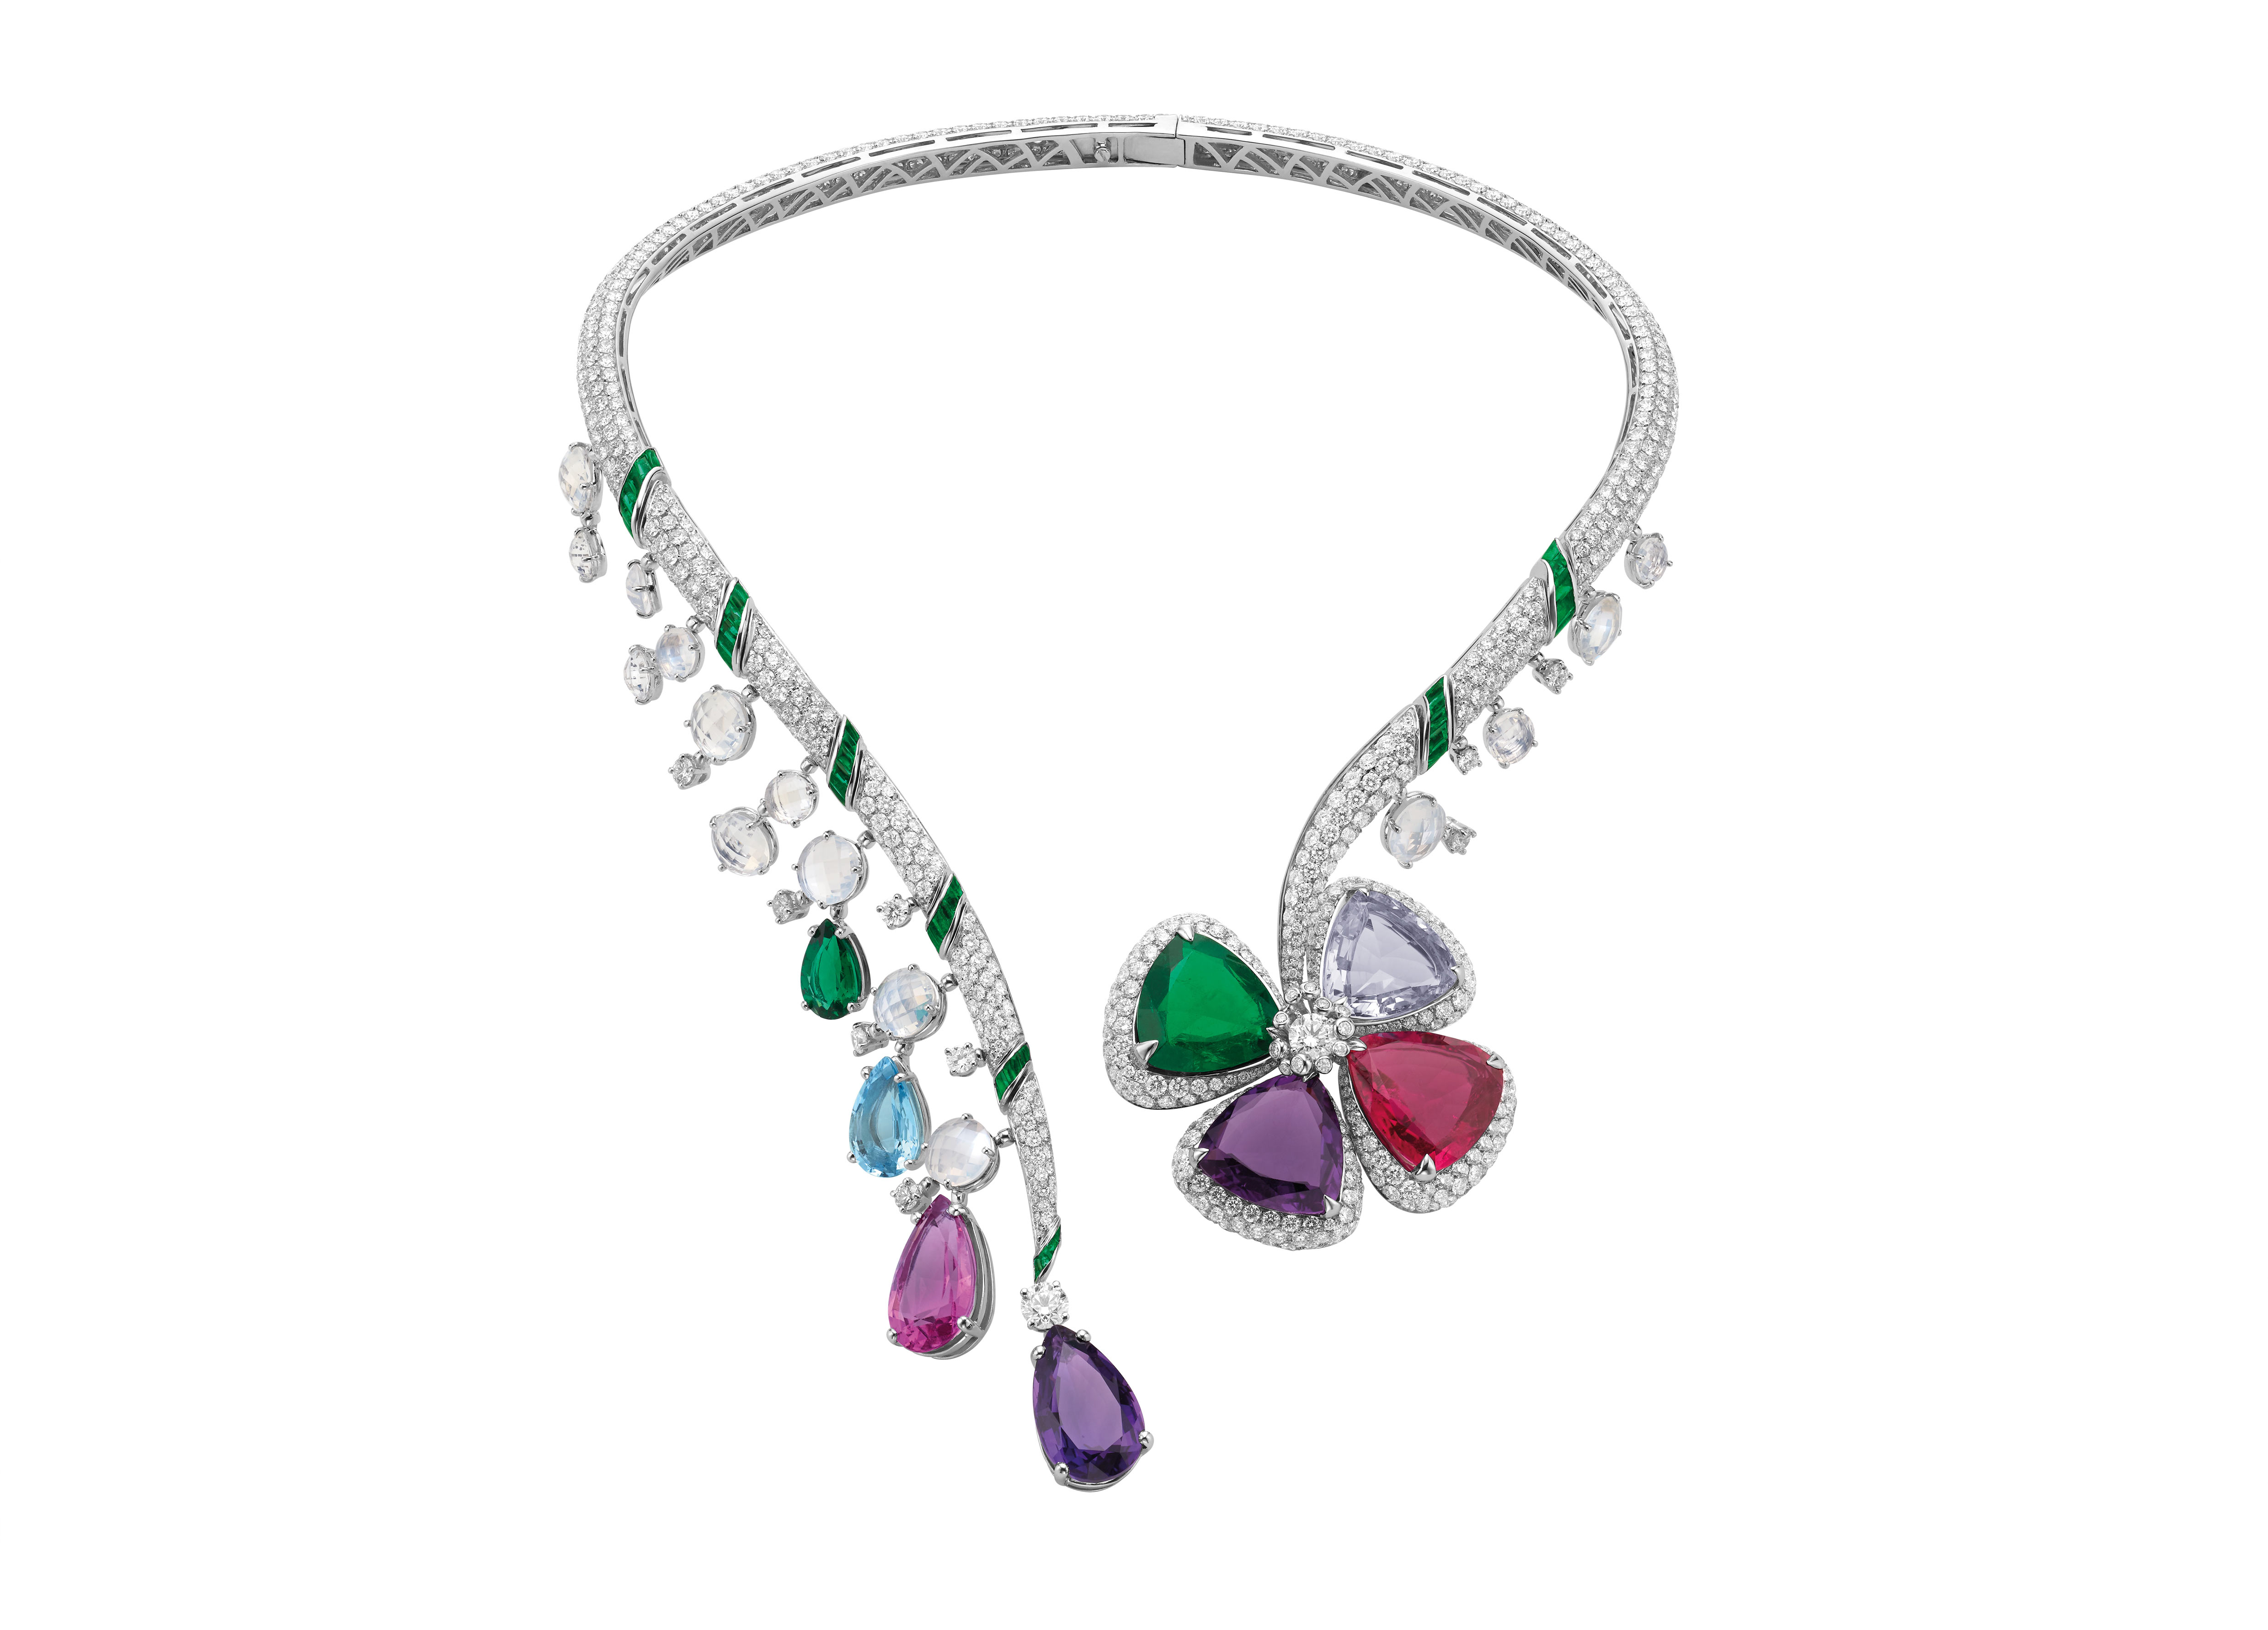 fiore ingenuo high jewellery necklace